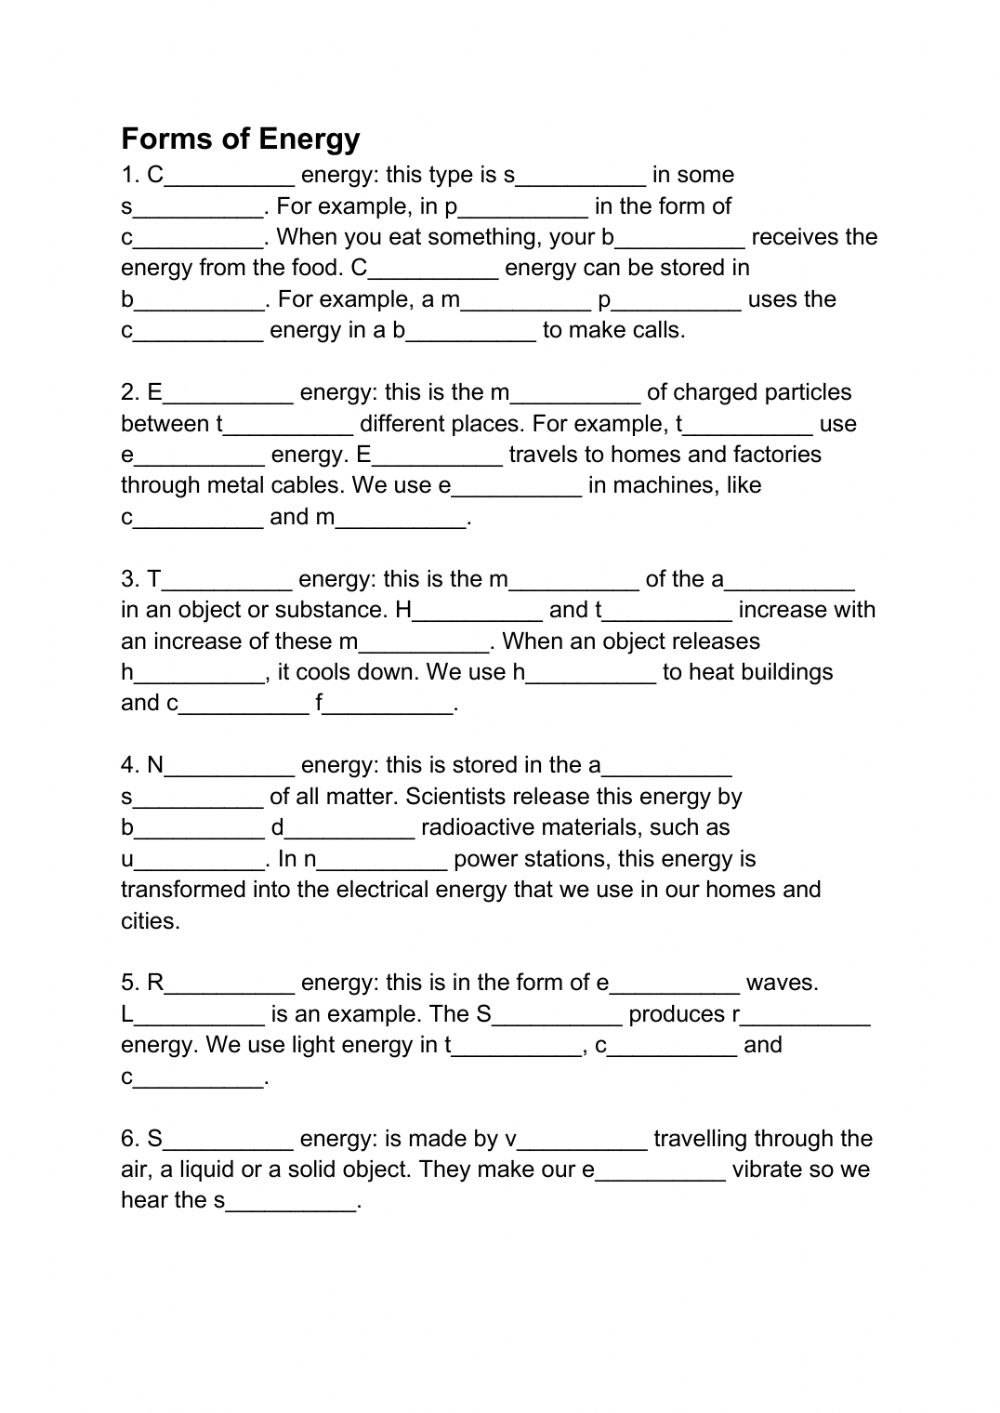 medium resolution of Forms of Energy online activity